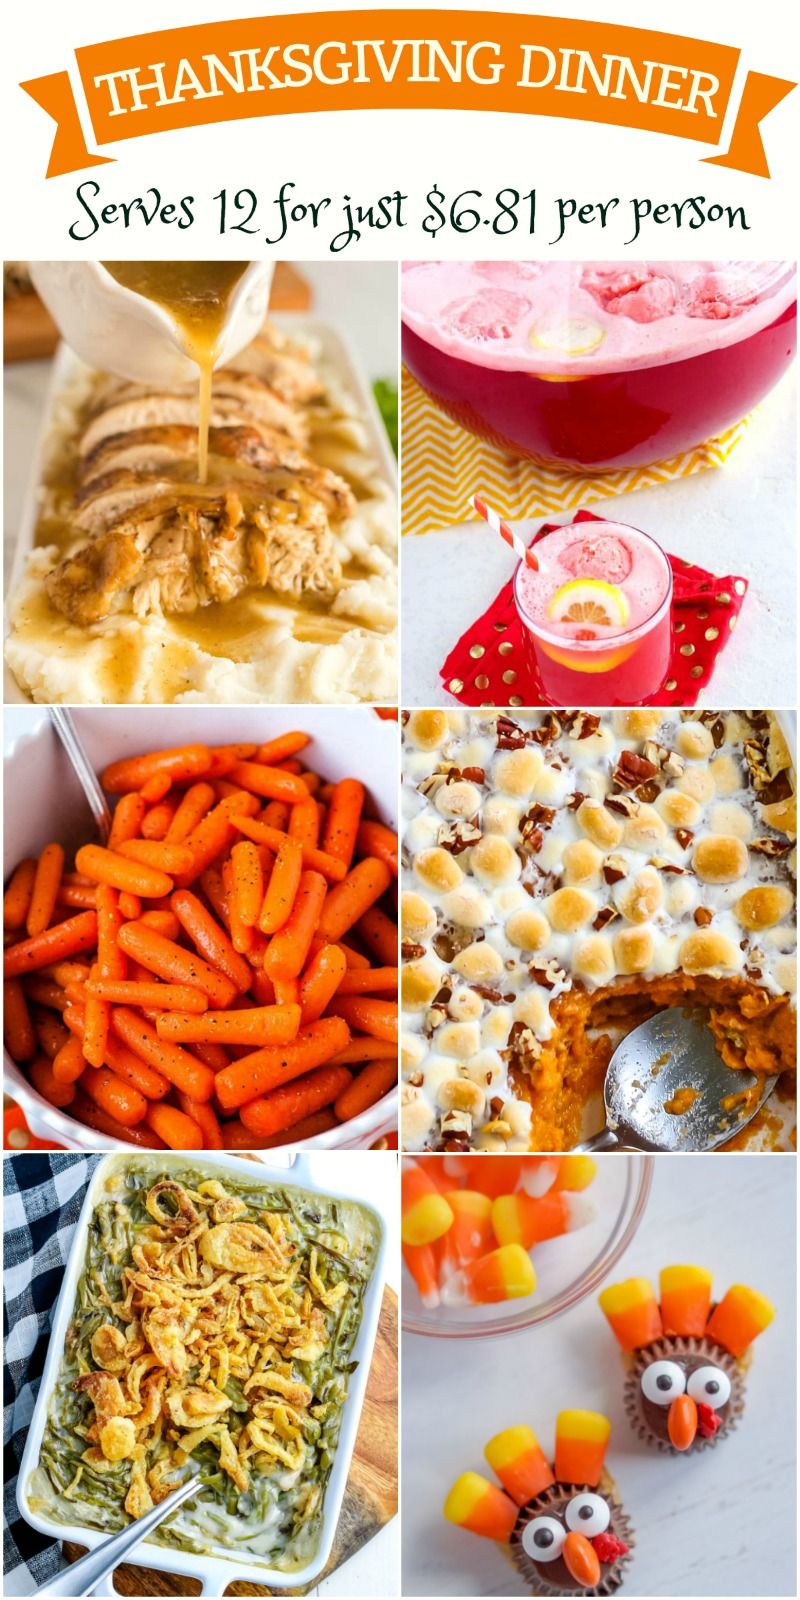 Picture Collage of Thanksgiving dishes to serve 12 with text overlay for Pinterest